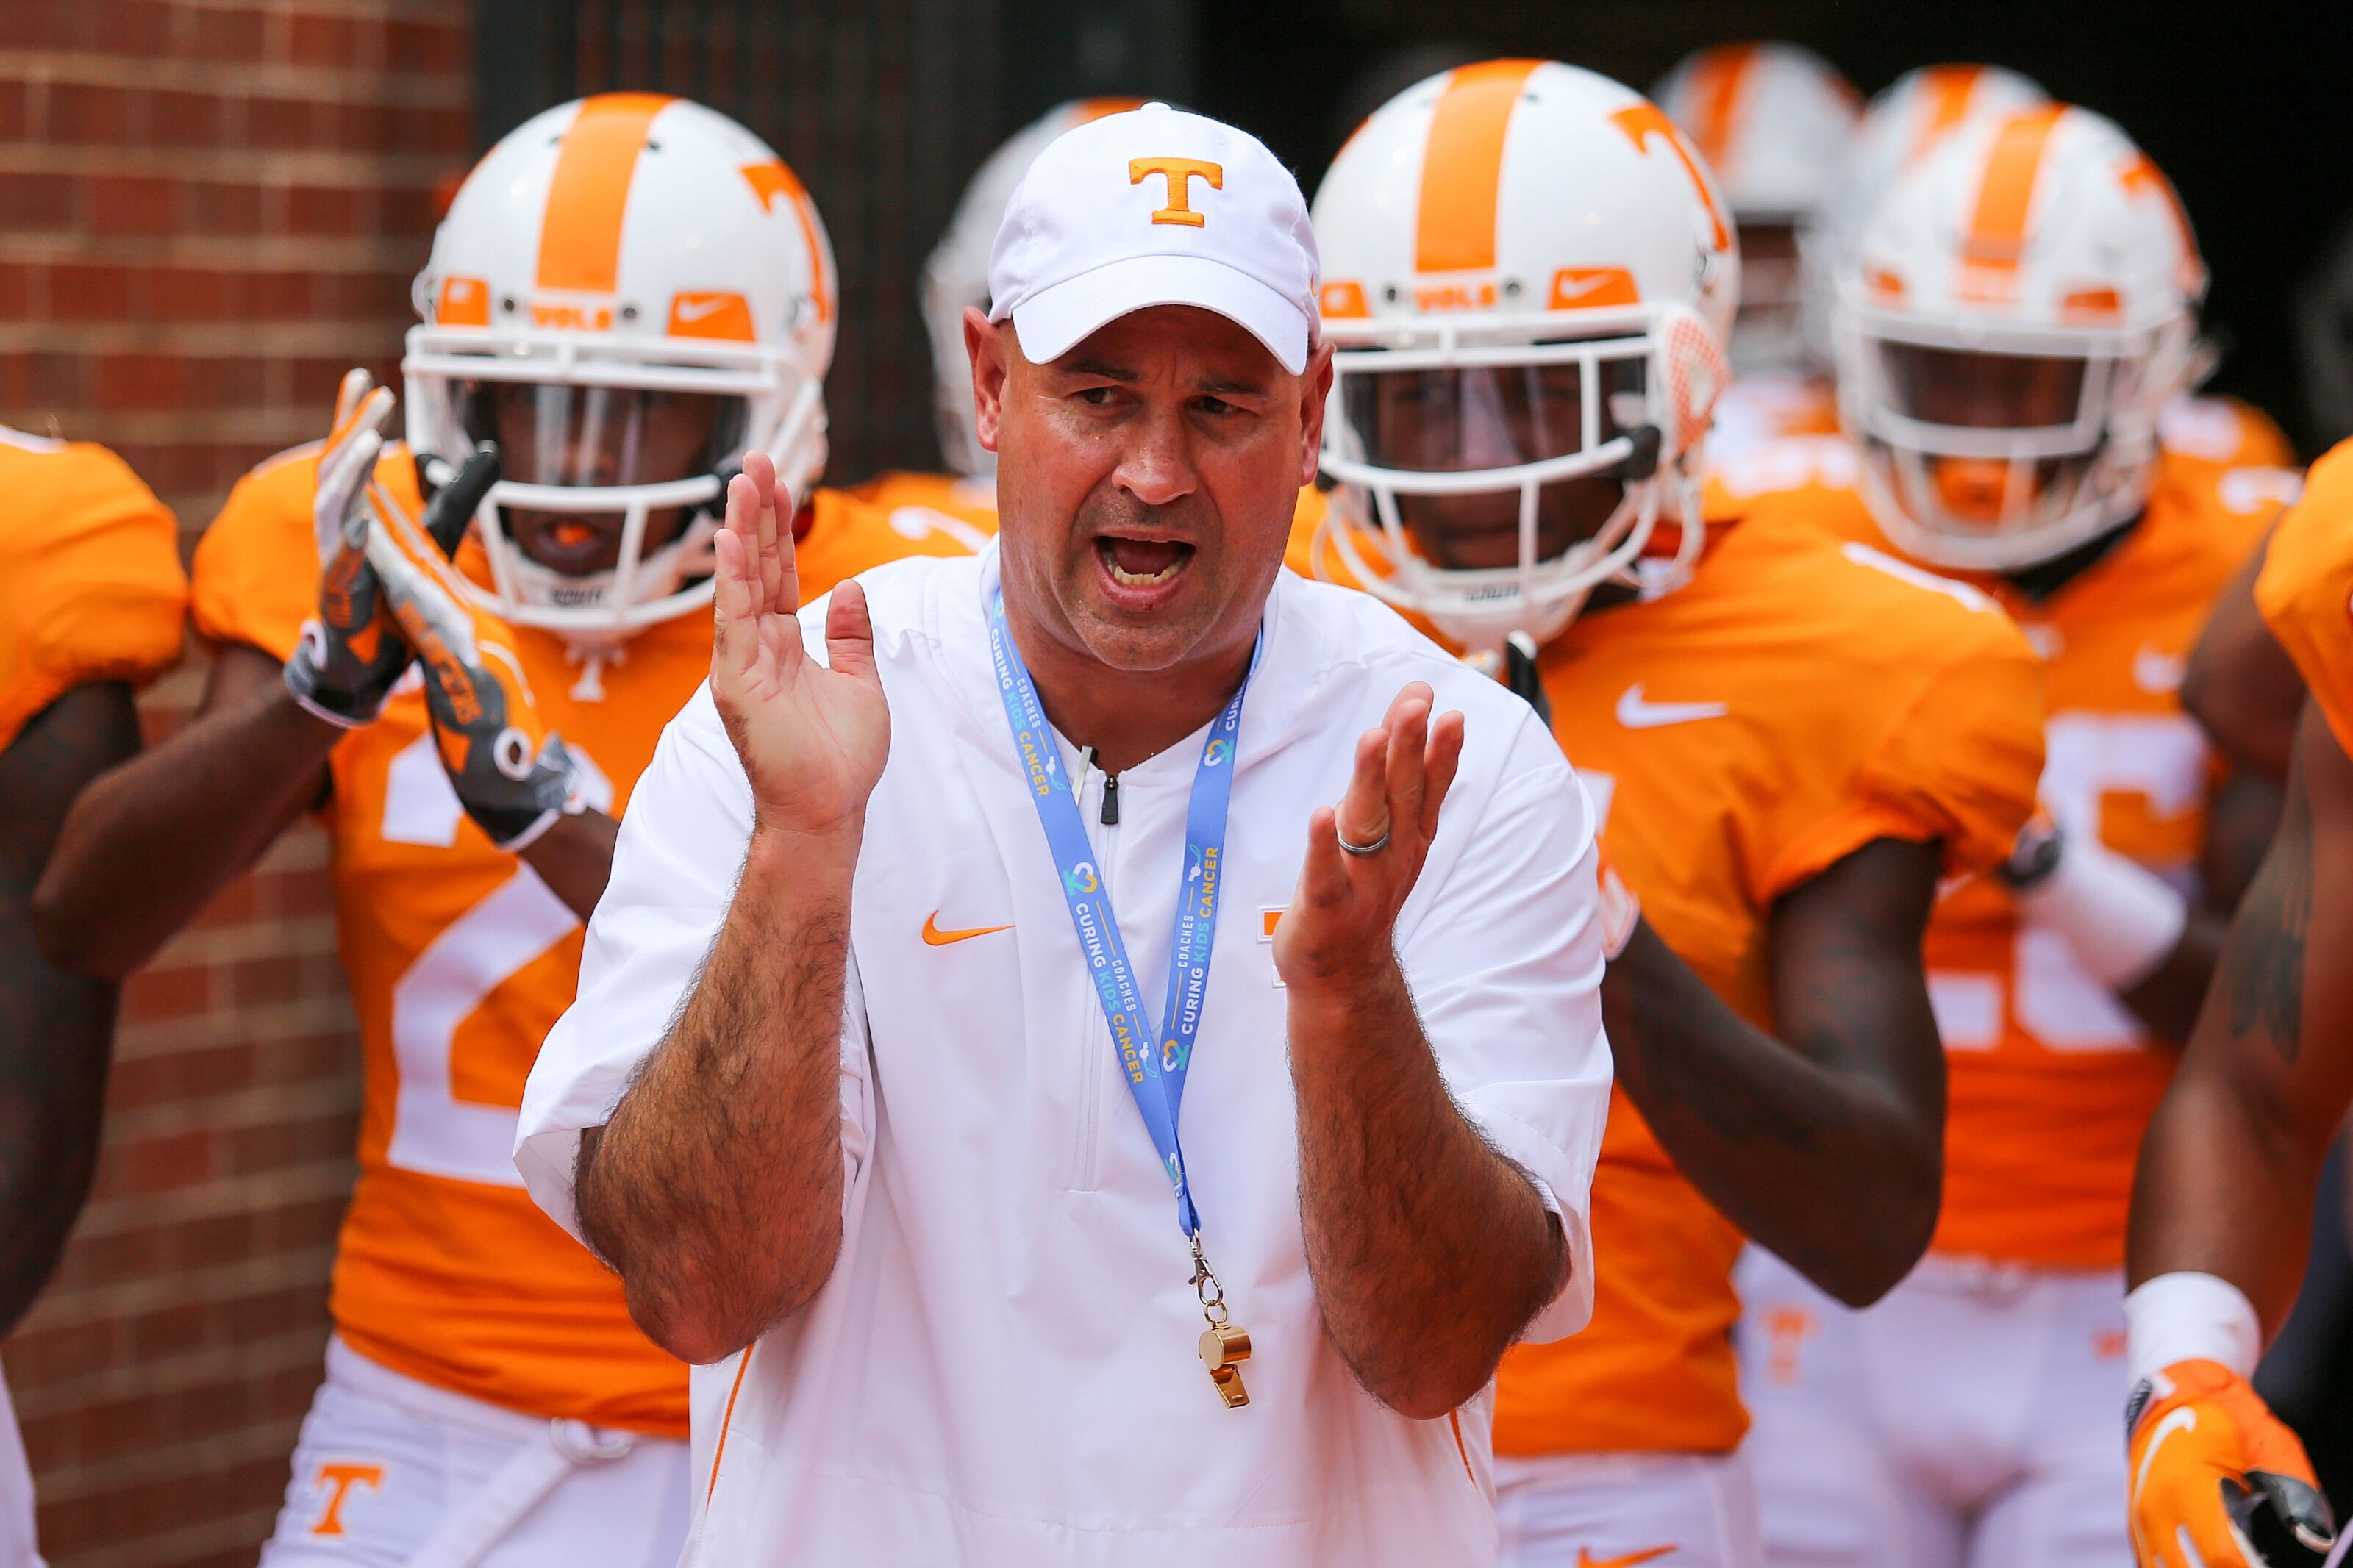 Tennessee football: 5 positives signs for Vols Jeremy Pruitt's first year